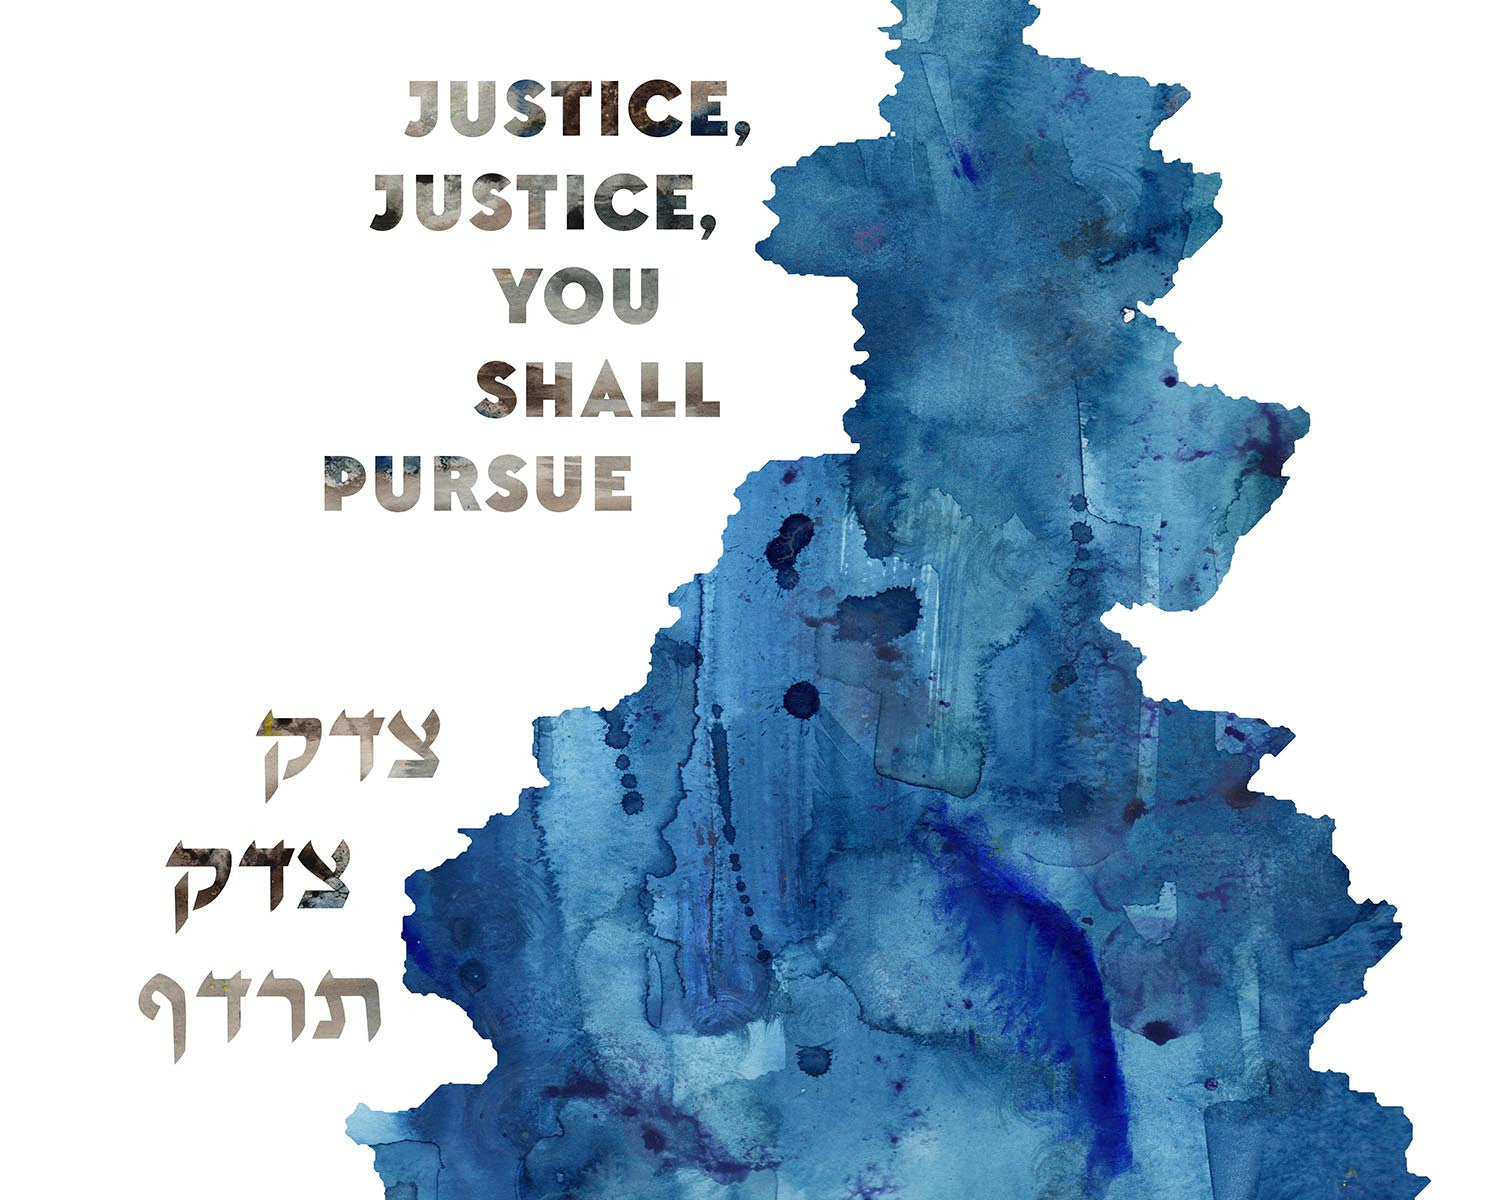 Art Print / Bat Mitzvah Gift / Bar Mitzvah Gift: Justice, Justice, You Shall Pursue